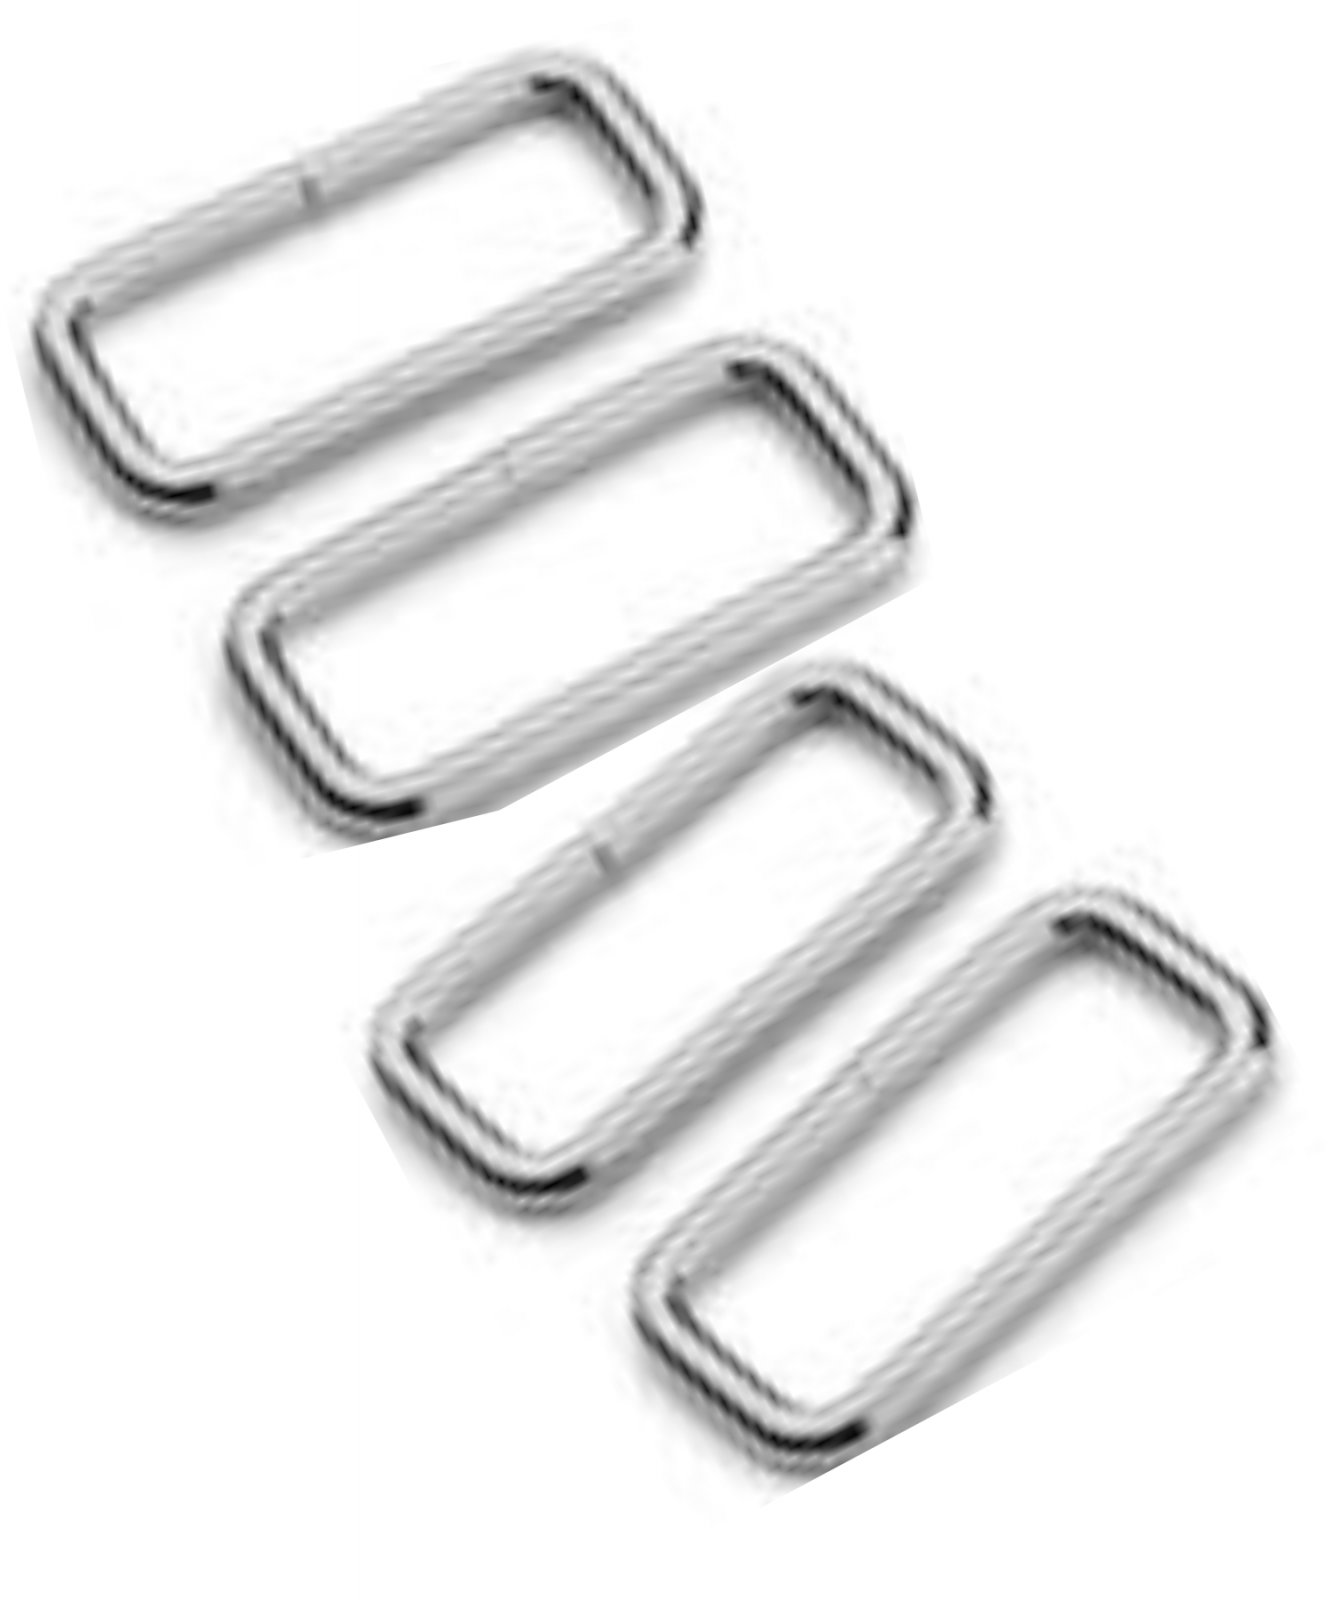 1-1/2 rectangle nickel 4pc